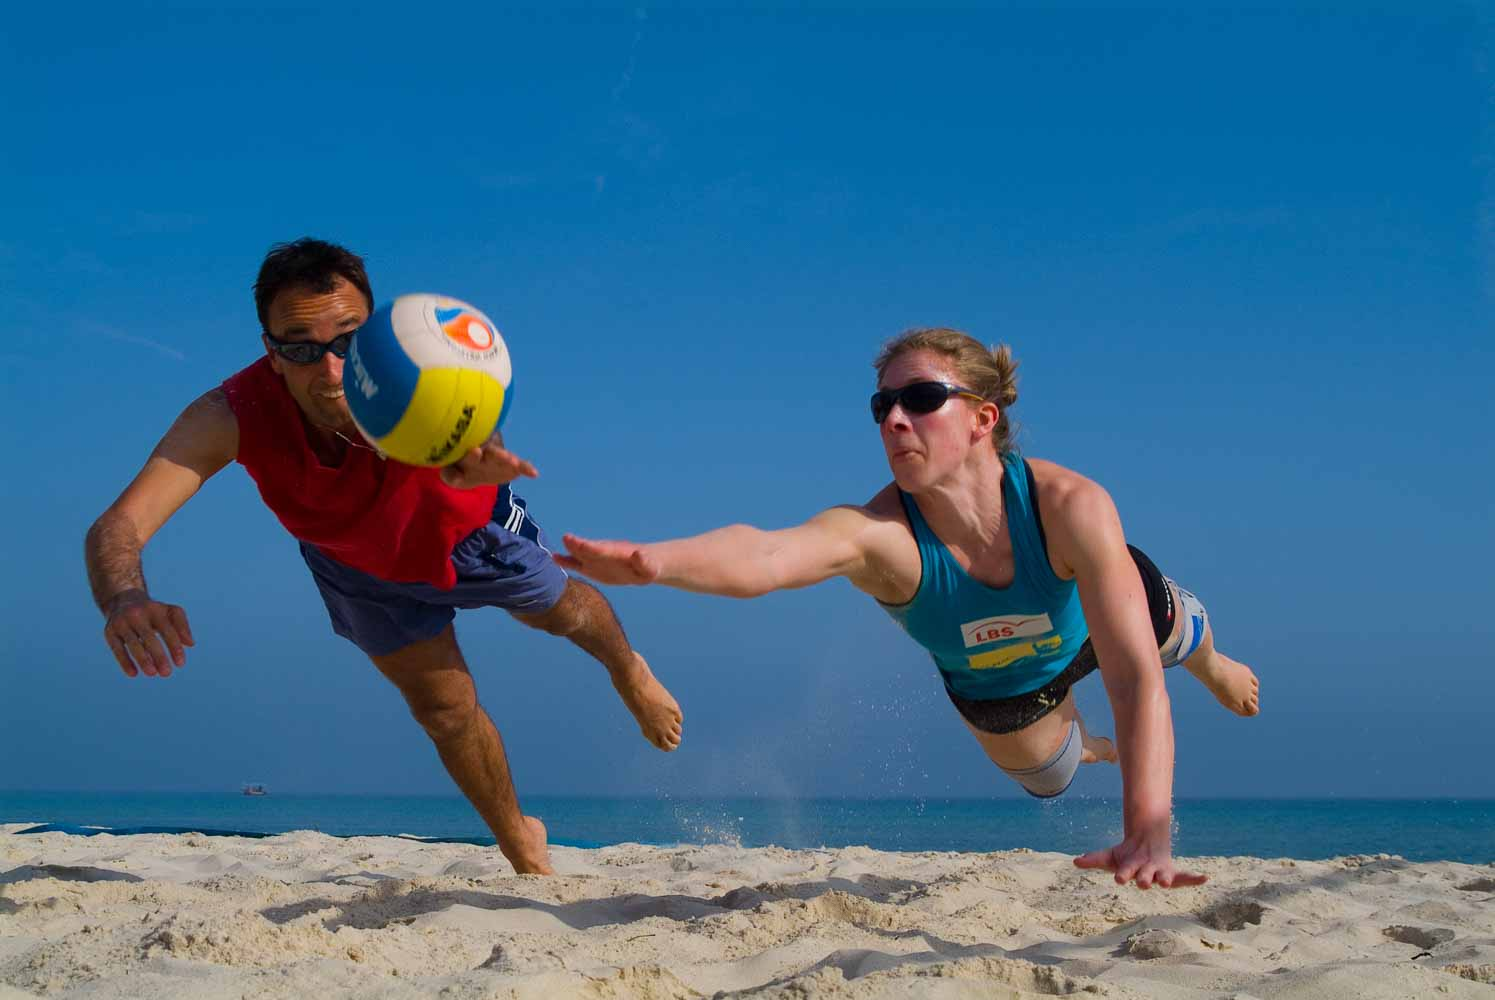 Iberostar Diar El Andalous Beach Volleyball